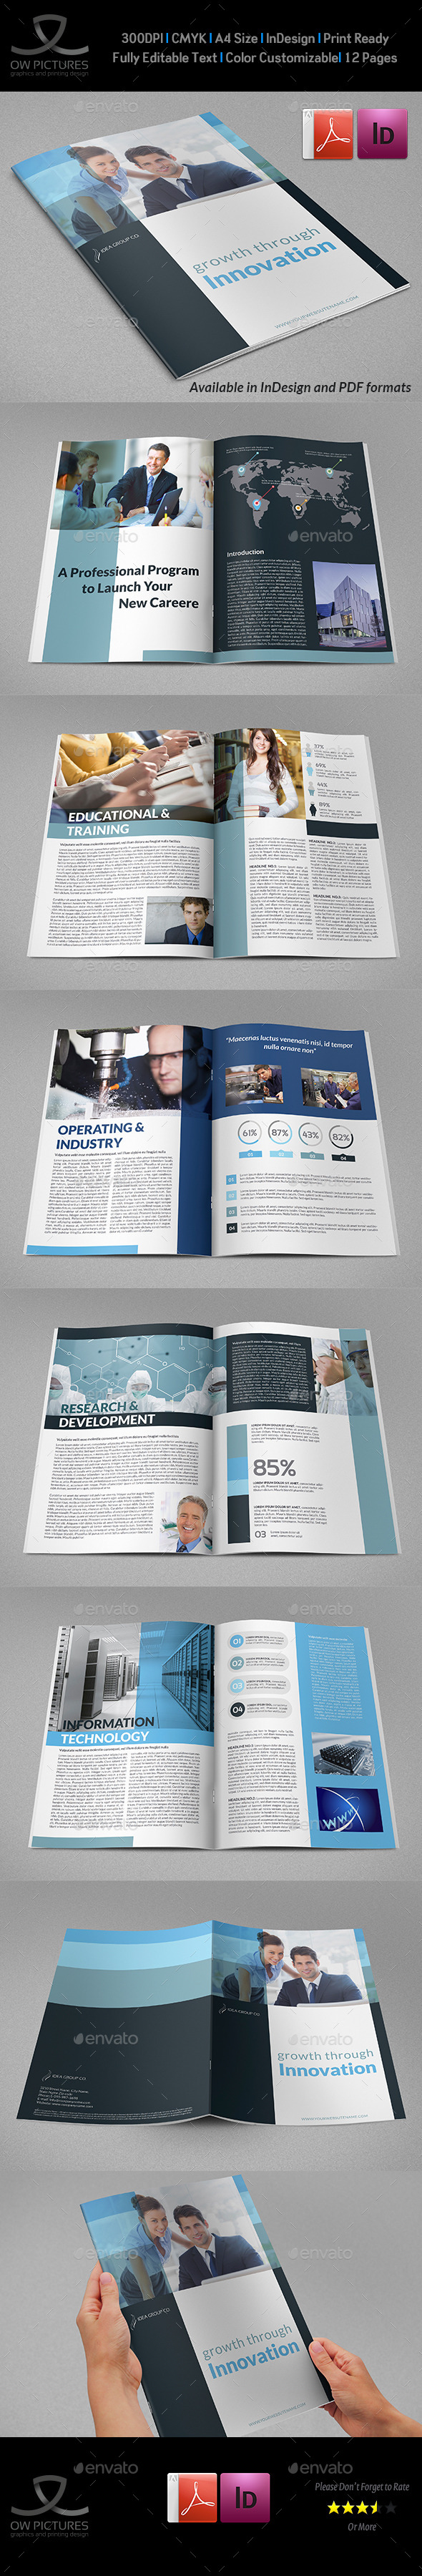 GraphicRiver Company Brochure Template Vol.41 12 Pages 10776197